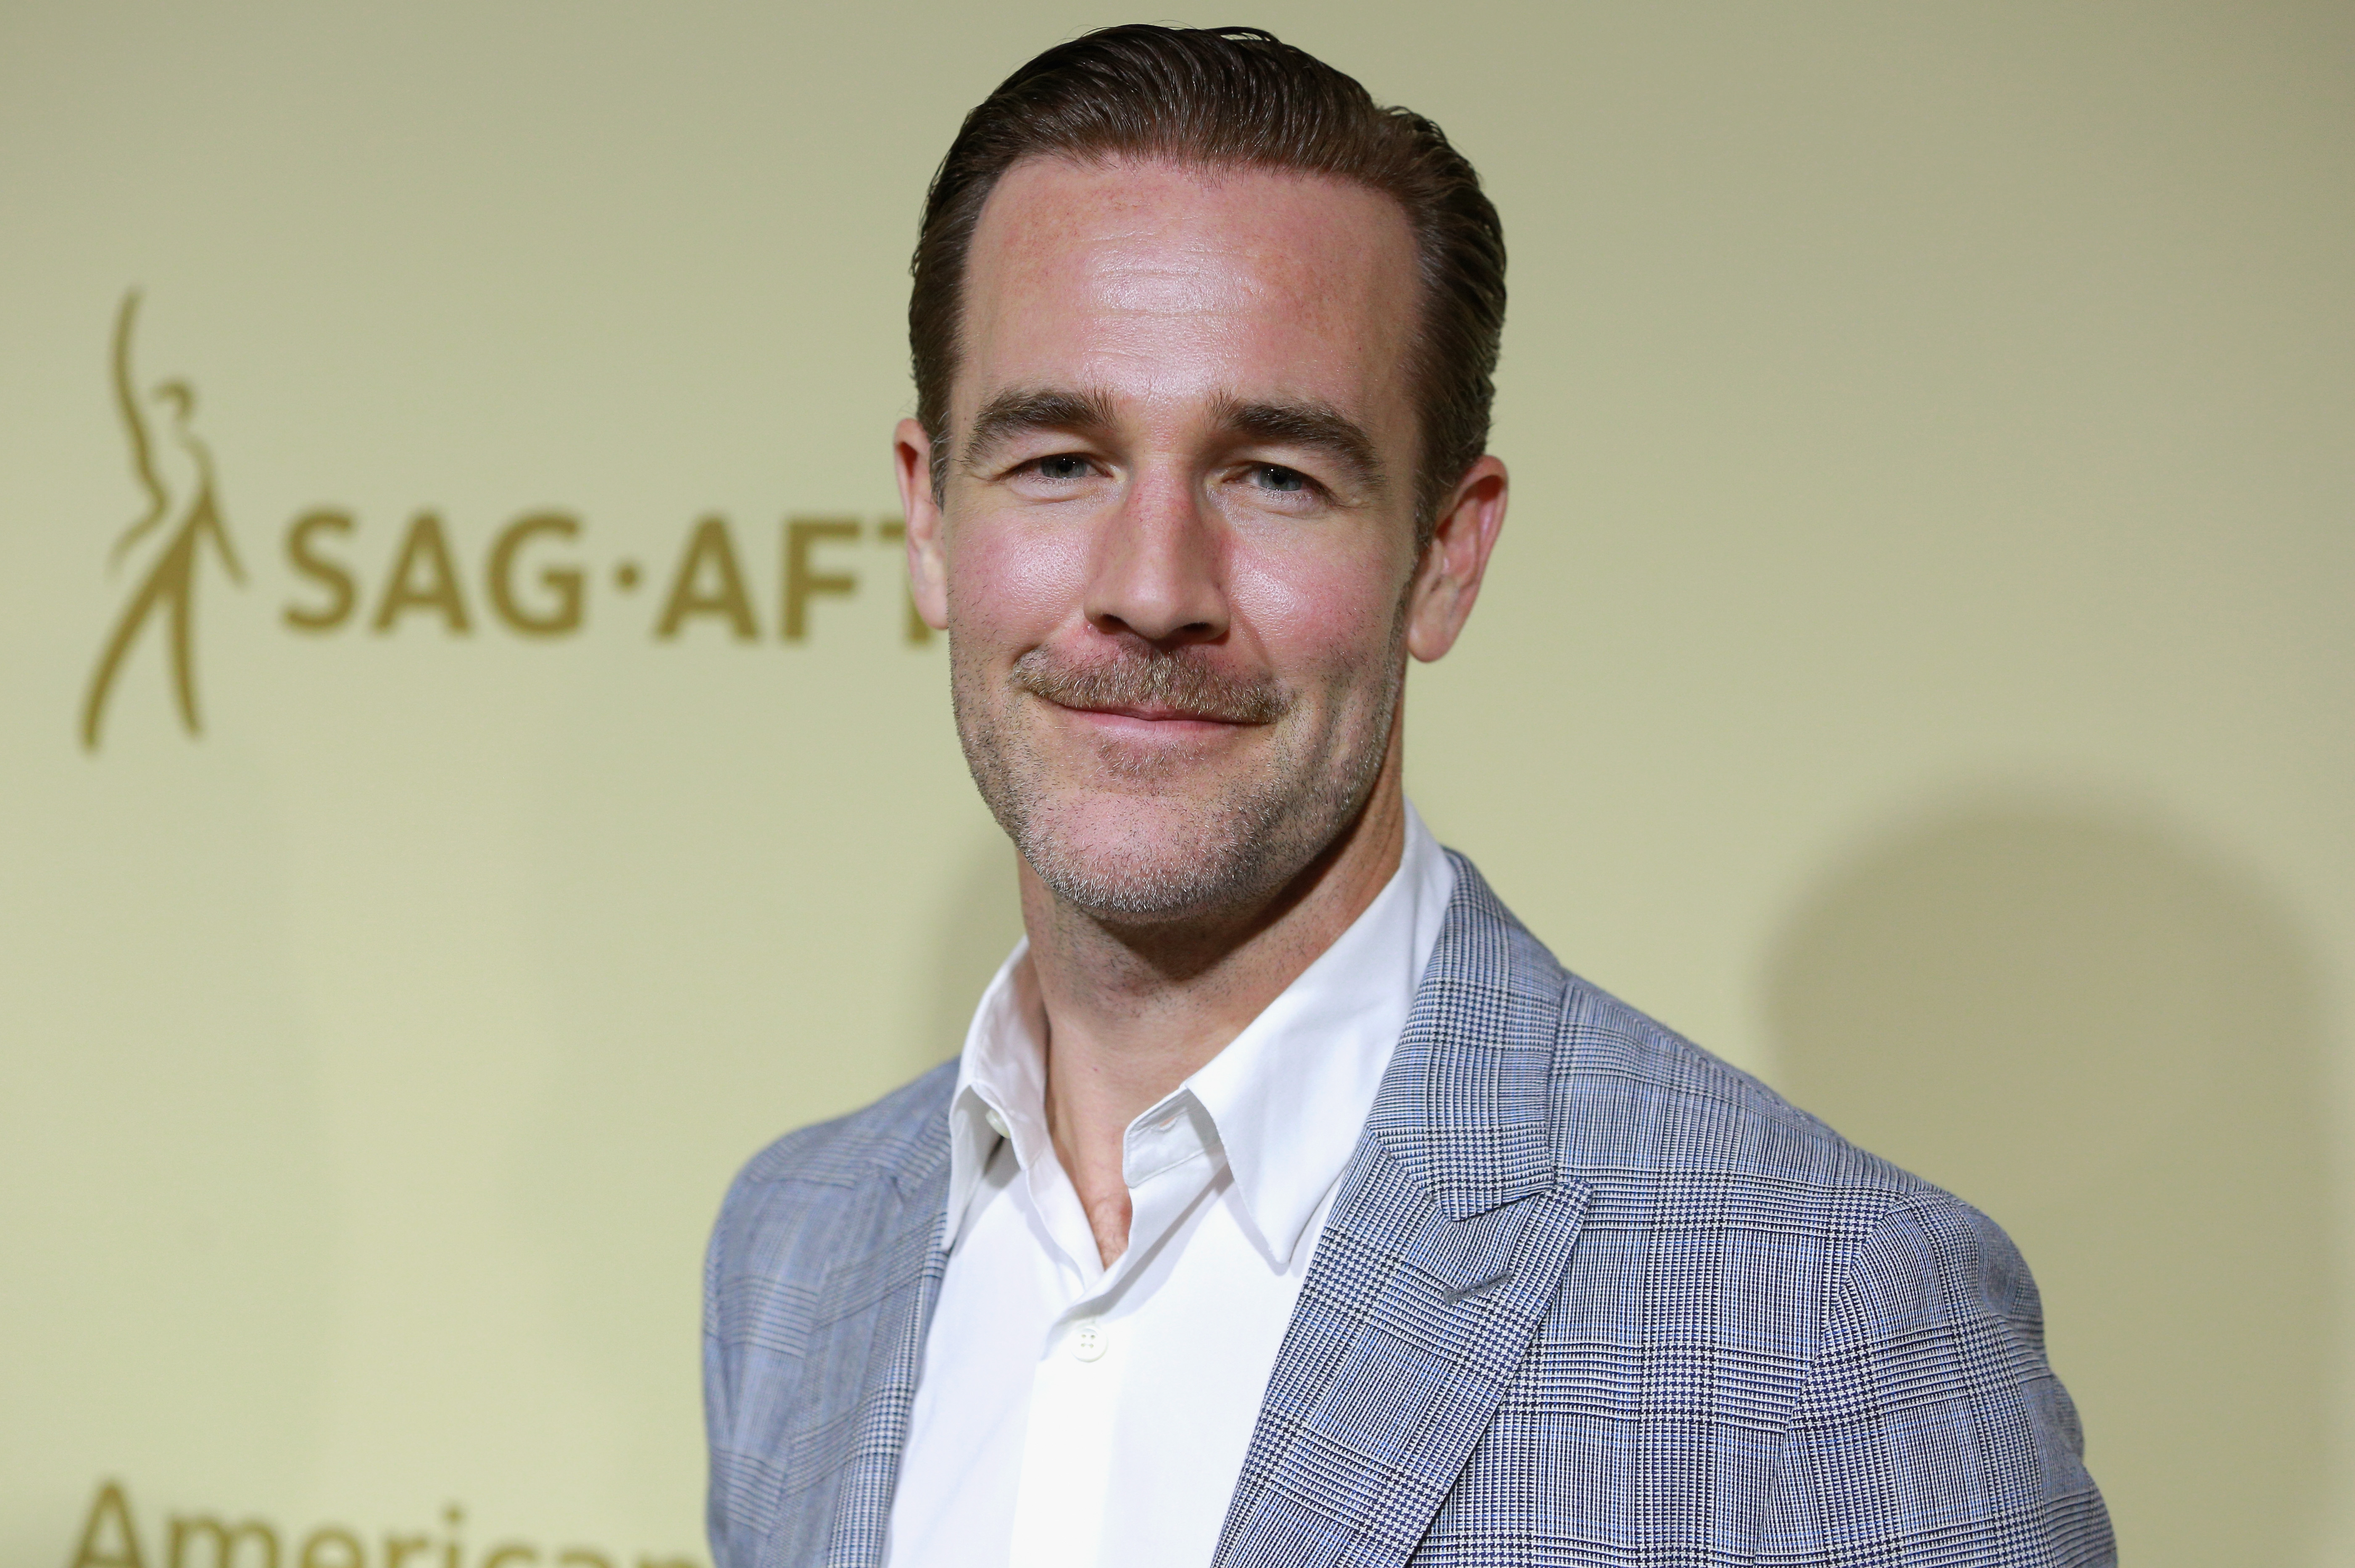 James Van Der Beek attends The Hollywood Reporter and SAG-AFTRA Inaugural Emmy Nominees Night on Sept. 14, 2017 in Beverly Hills, California.